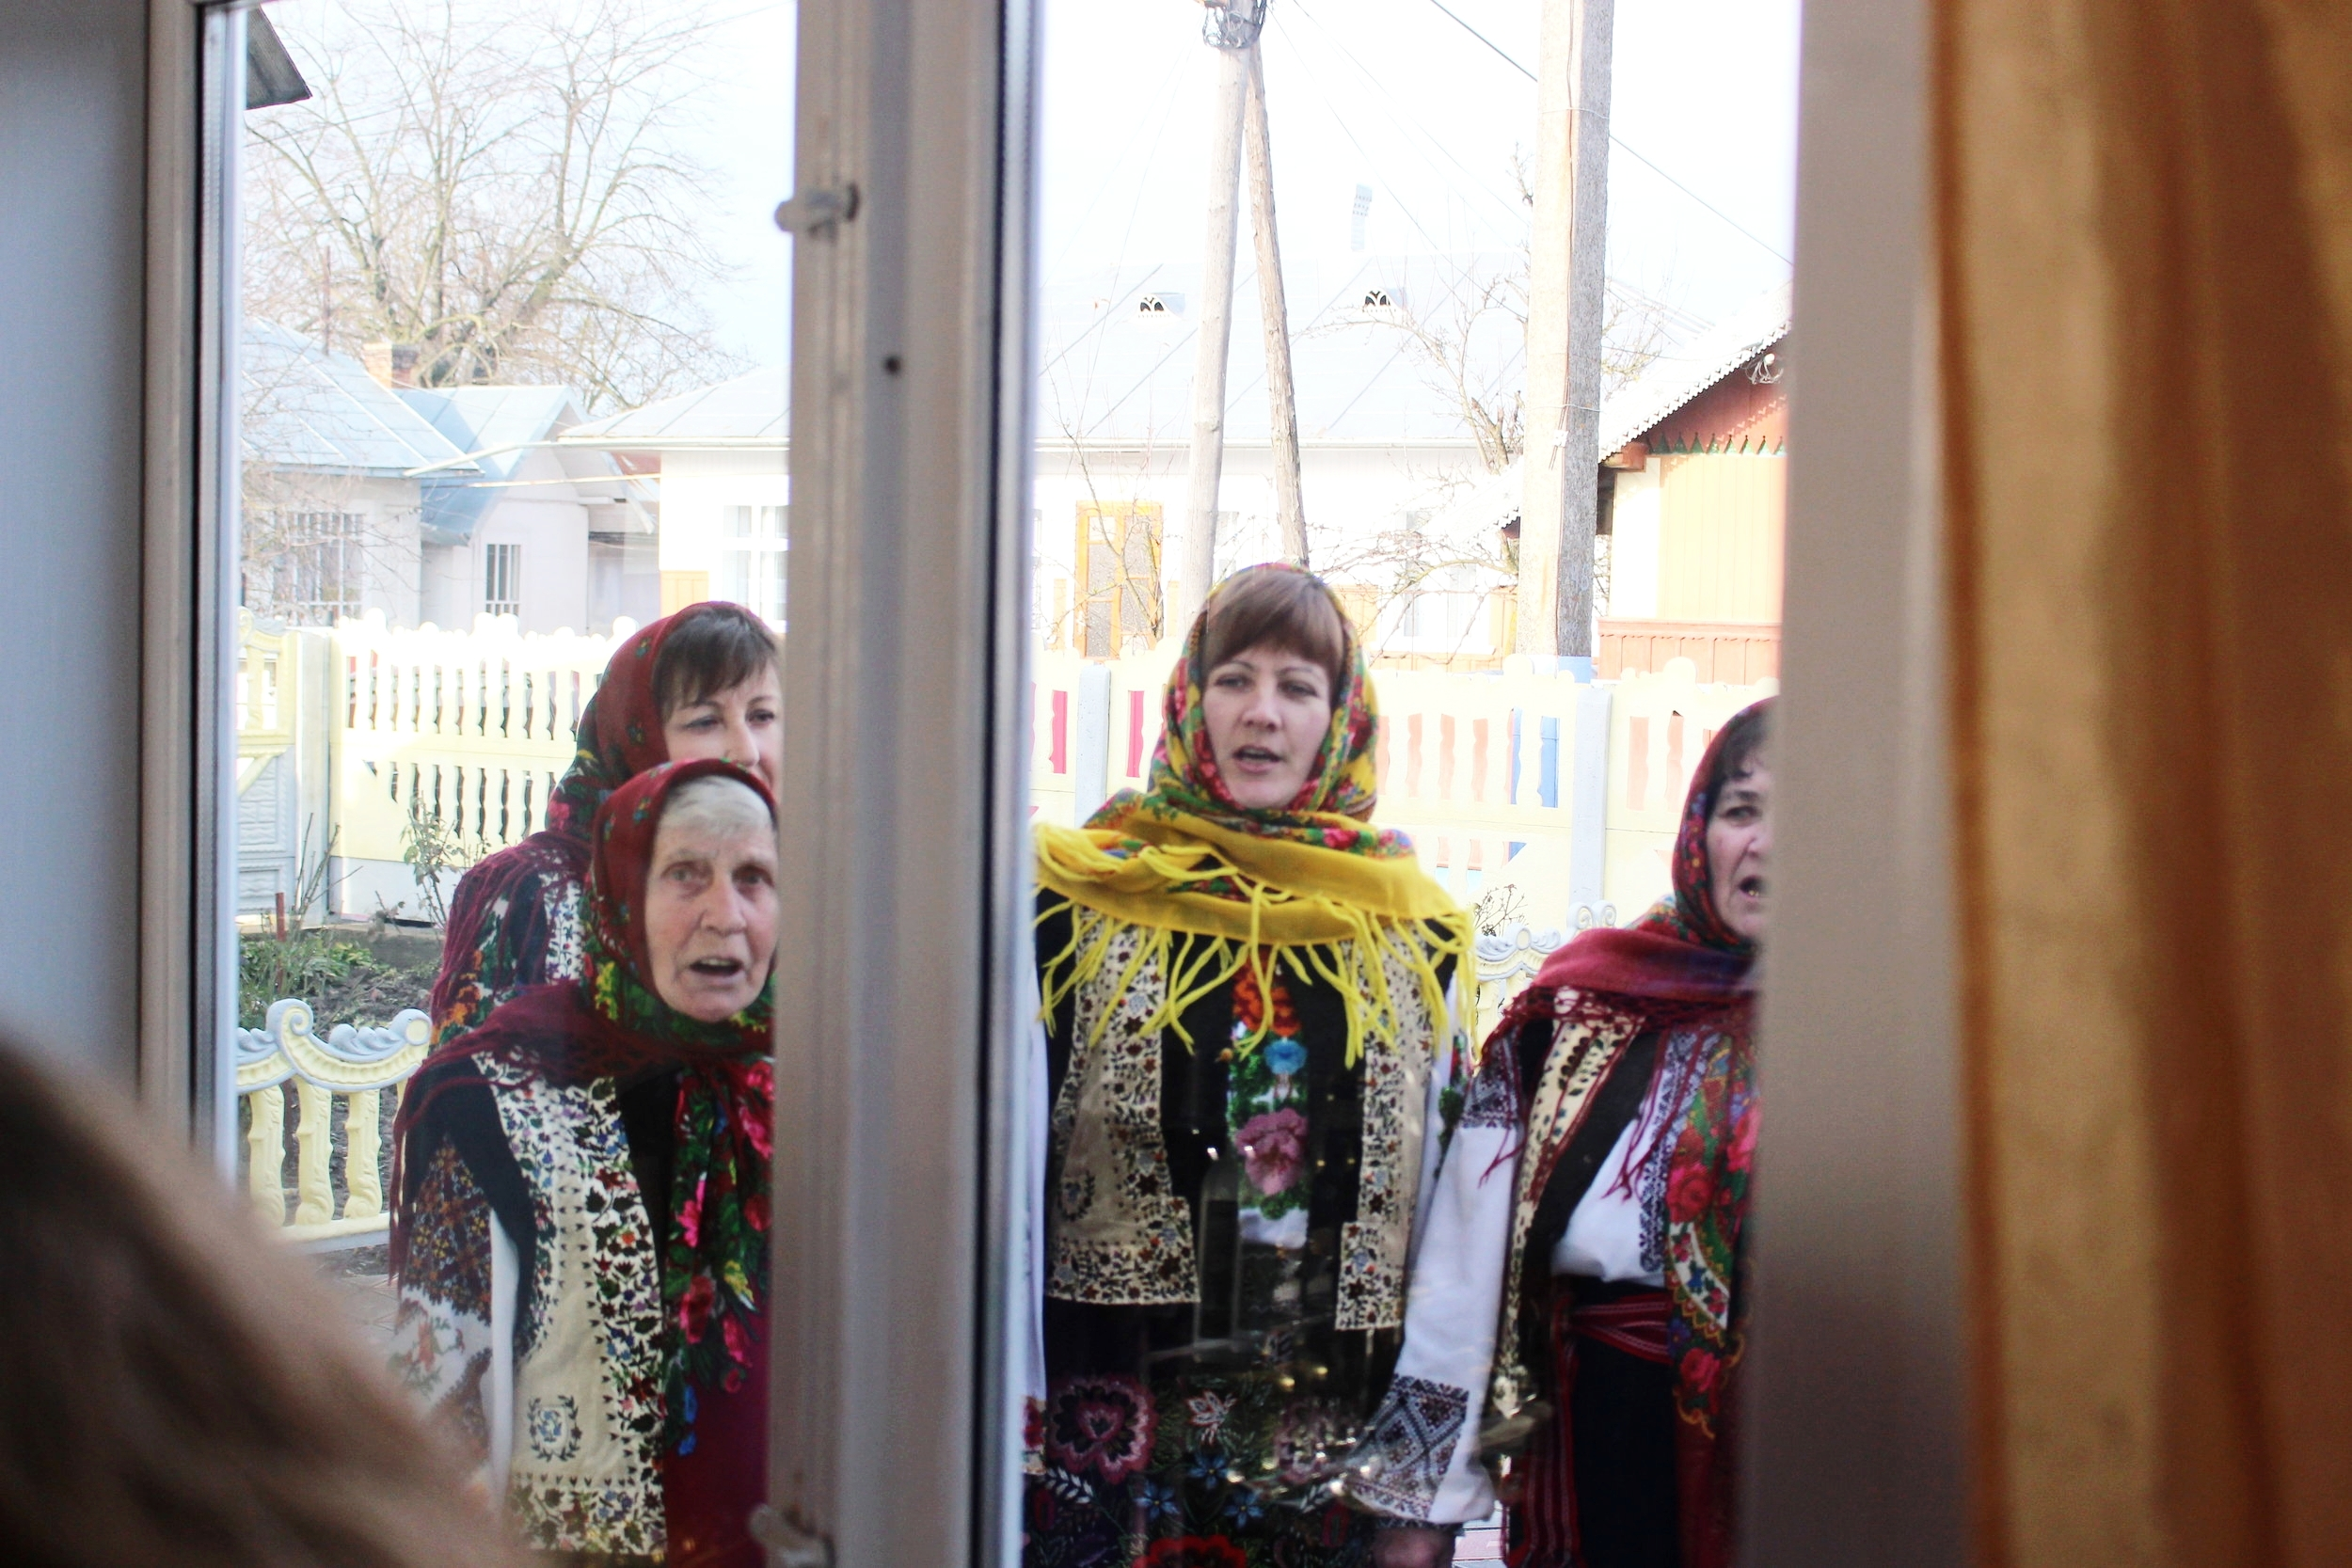 The carollers started singing by the window before the hosts invited them in.